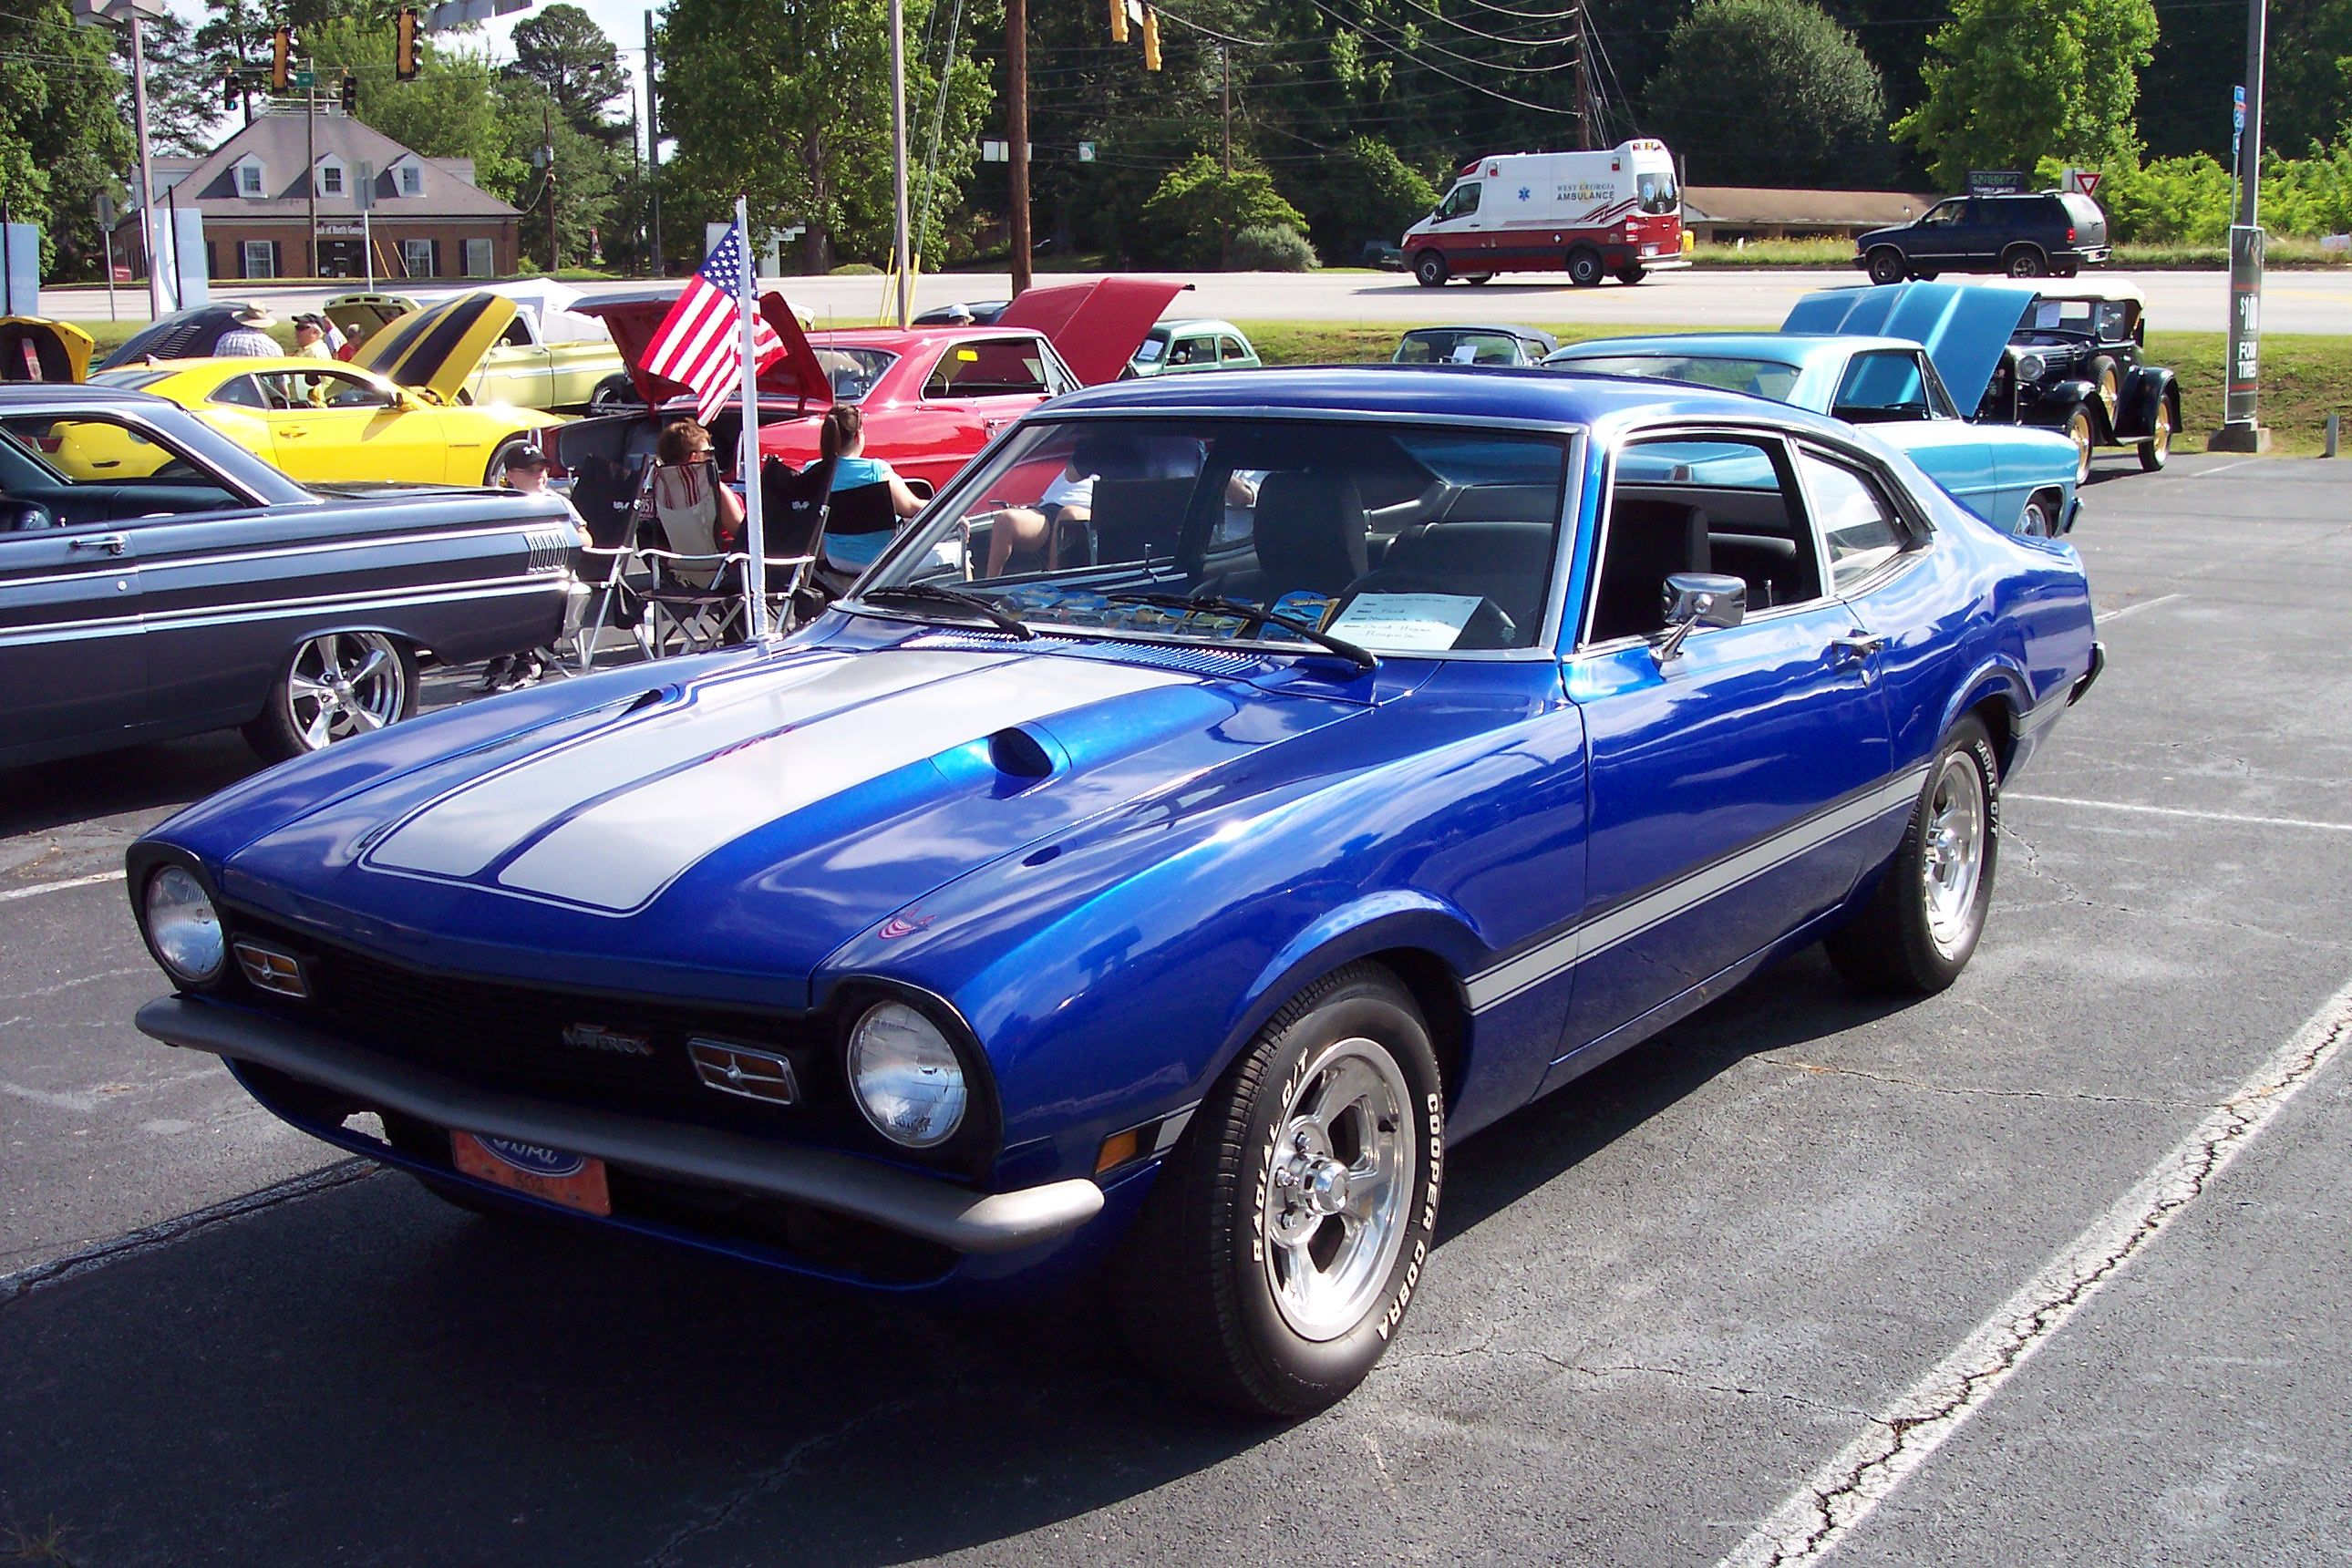 1973 Ford Maverick 17 Cars Ford Maverick Ford Classic Cars Ford